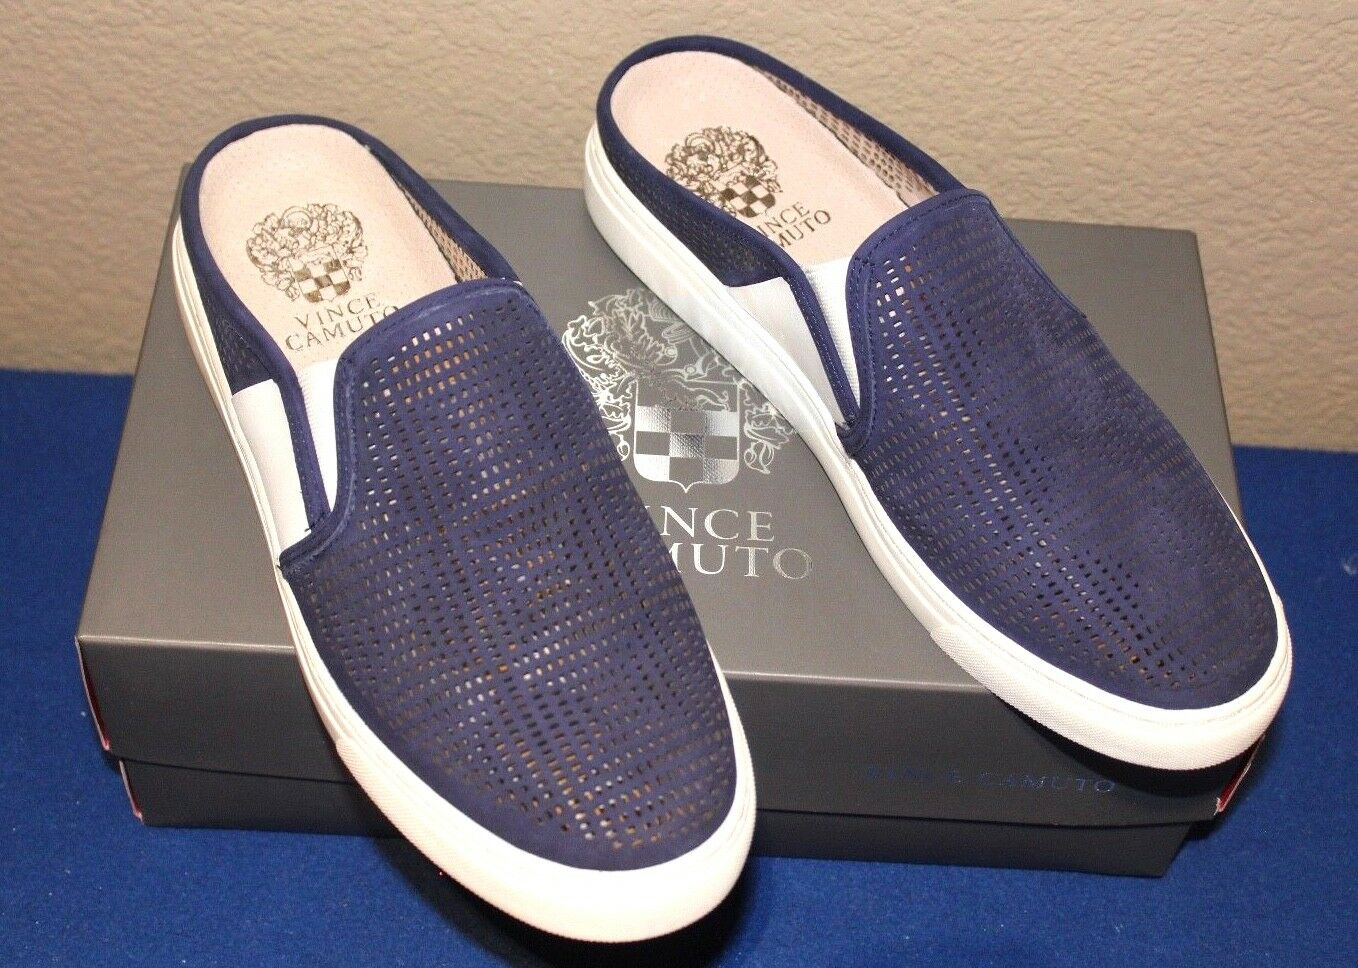 Vince Camuto Bretta Leder Perforated 7.5M Mule Sneaker Blau NOTE 7.5M Perforated NEW IN BOX 715b11